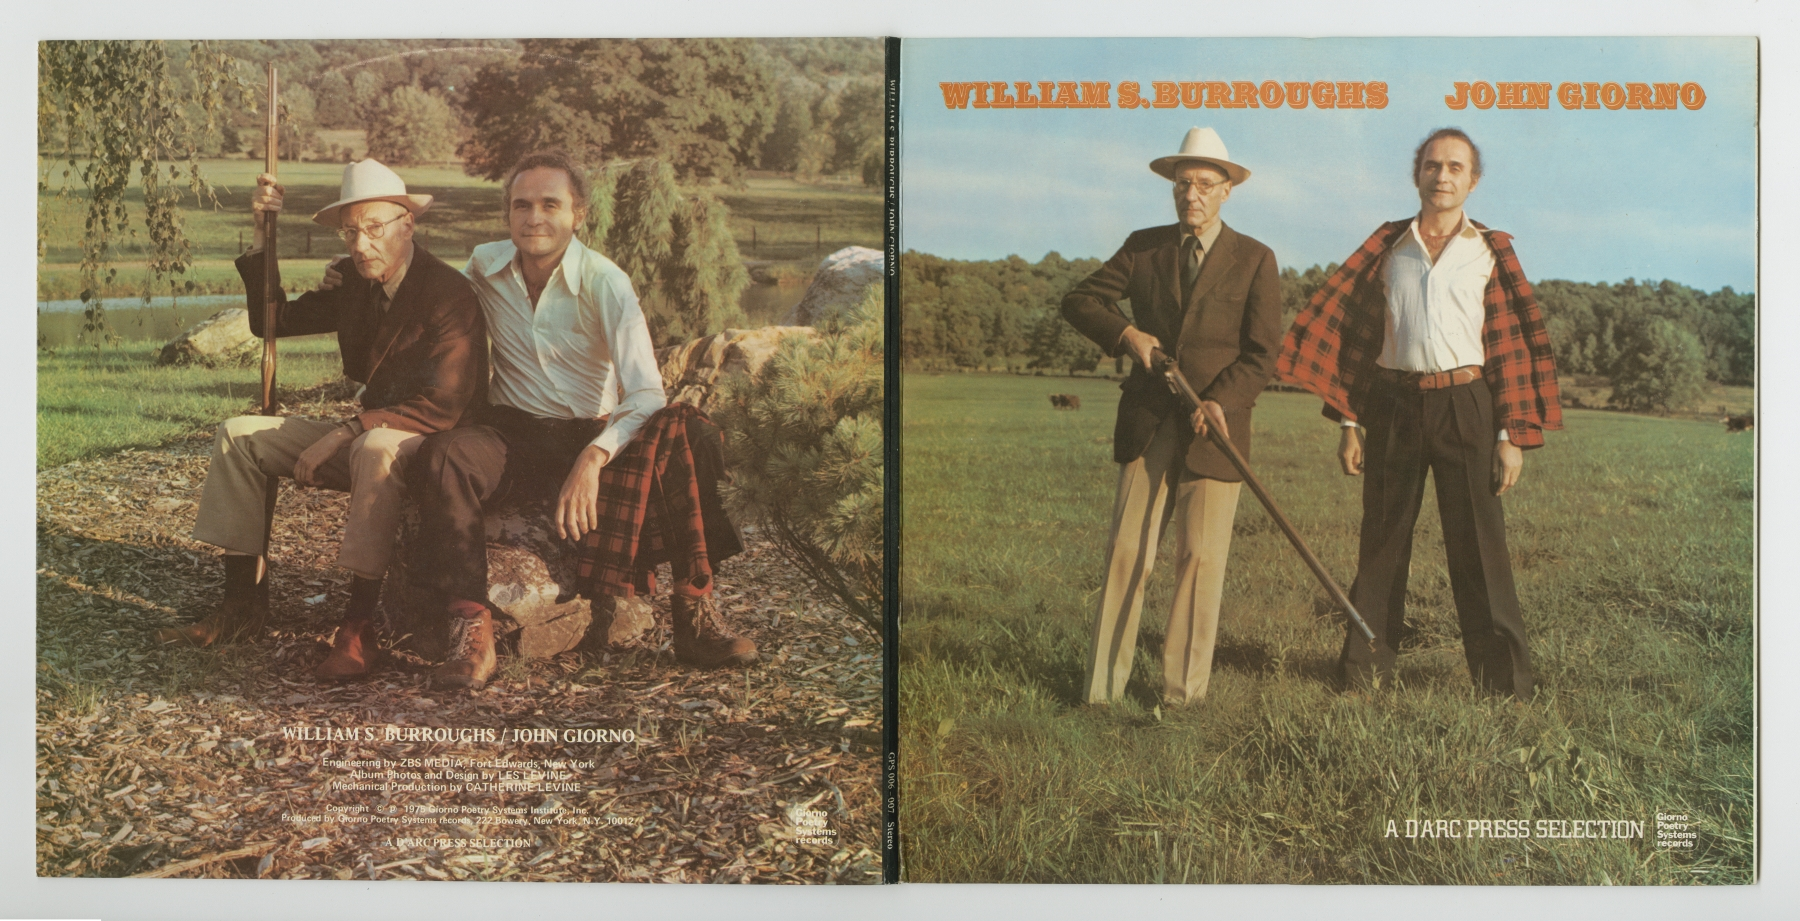 William S. Burroughs / John Giorno: A D'Arc Press Selection (1975), front and back cover